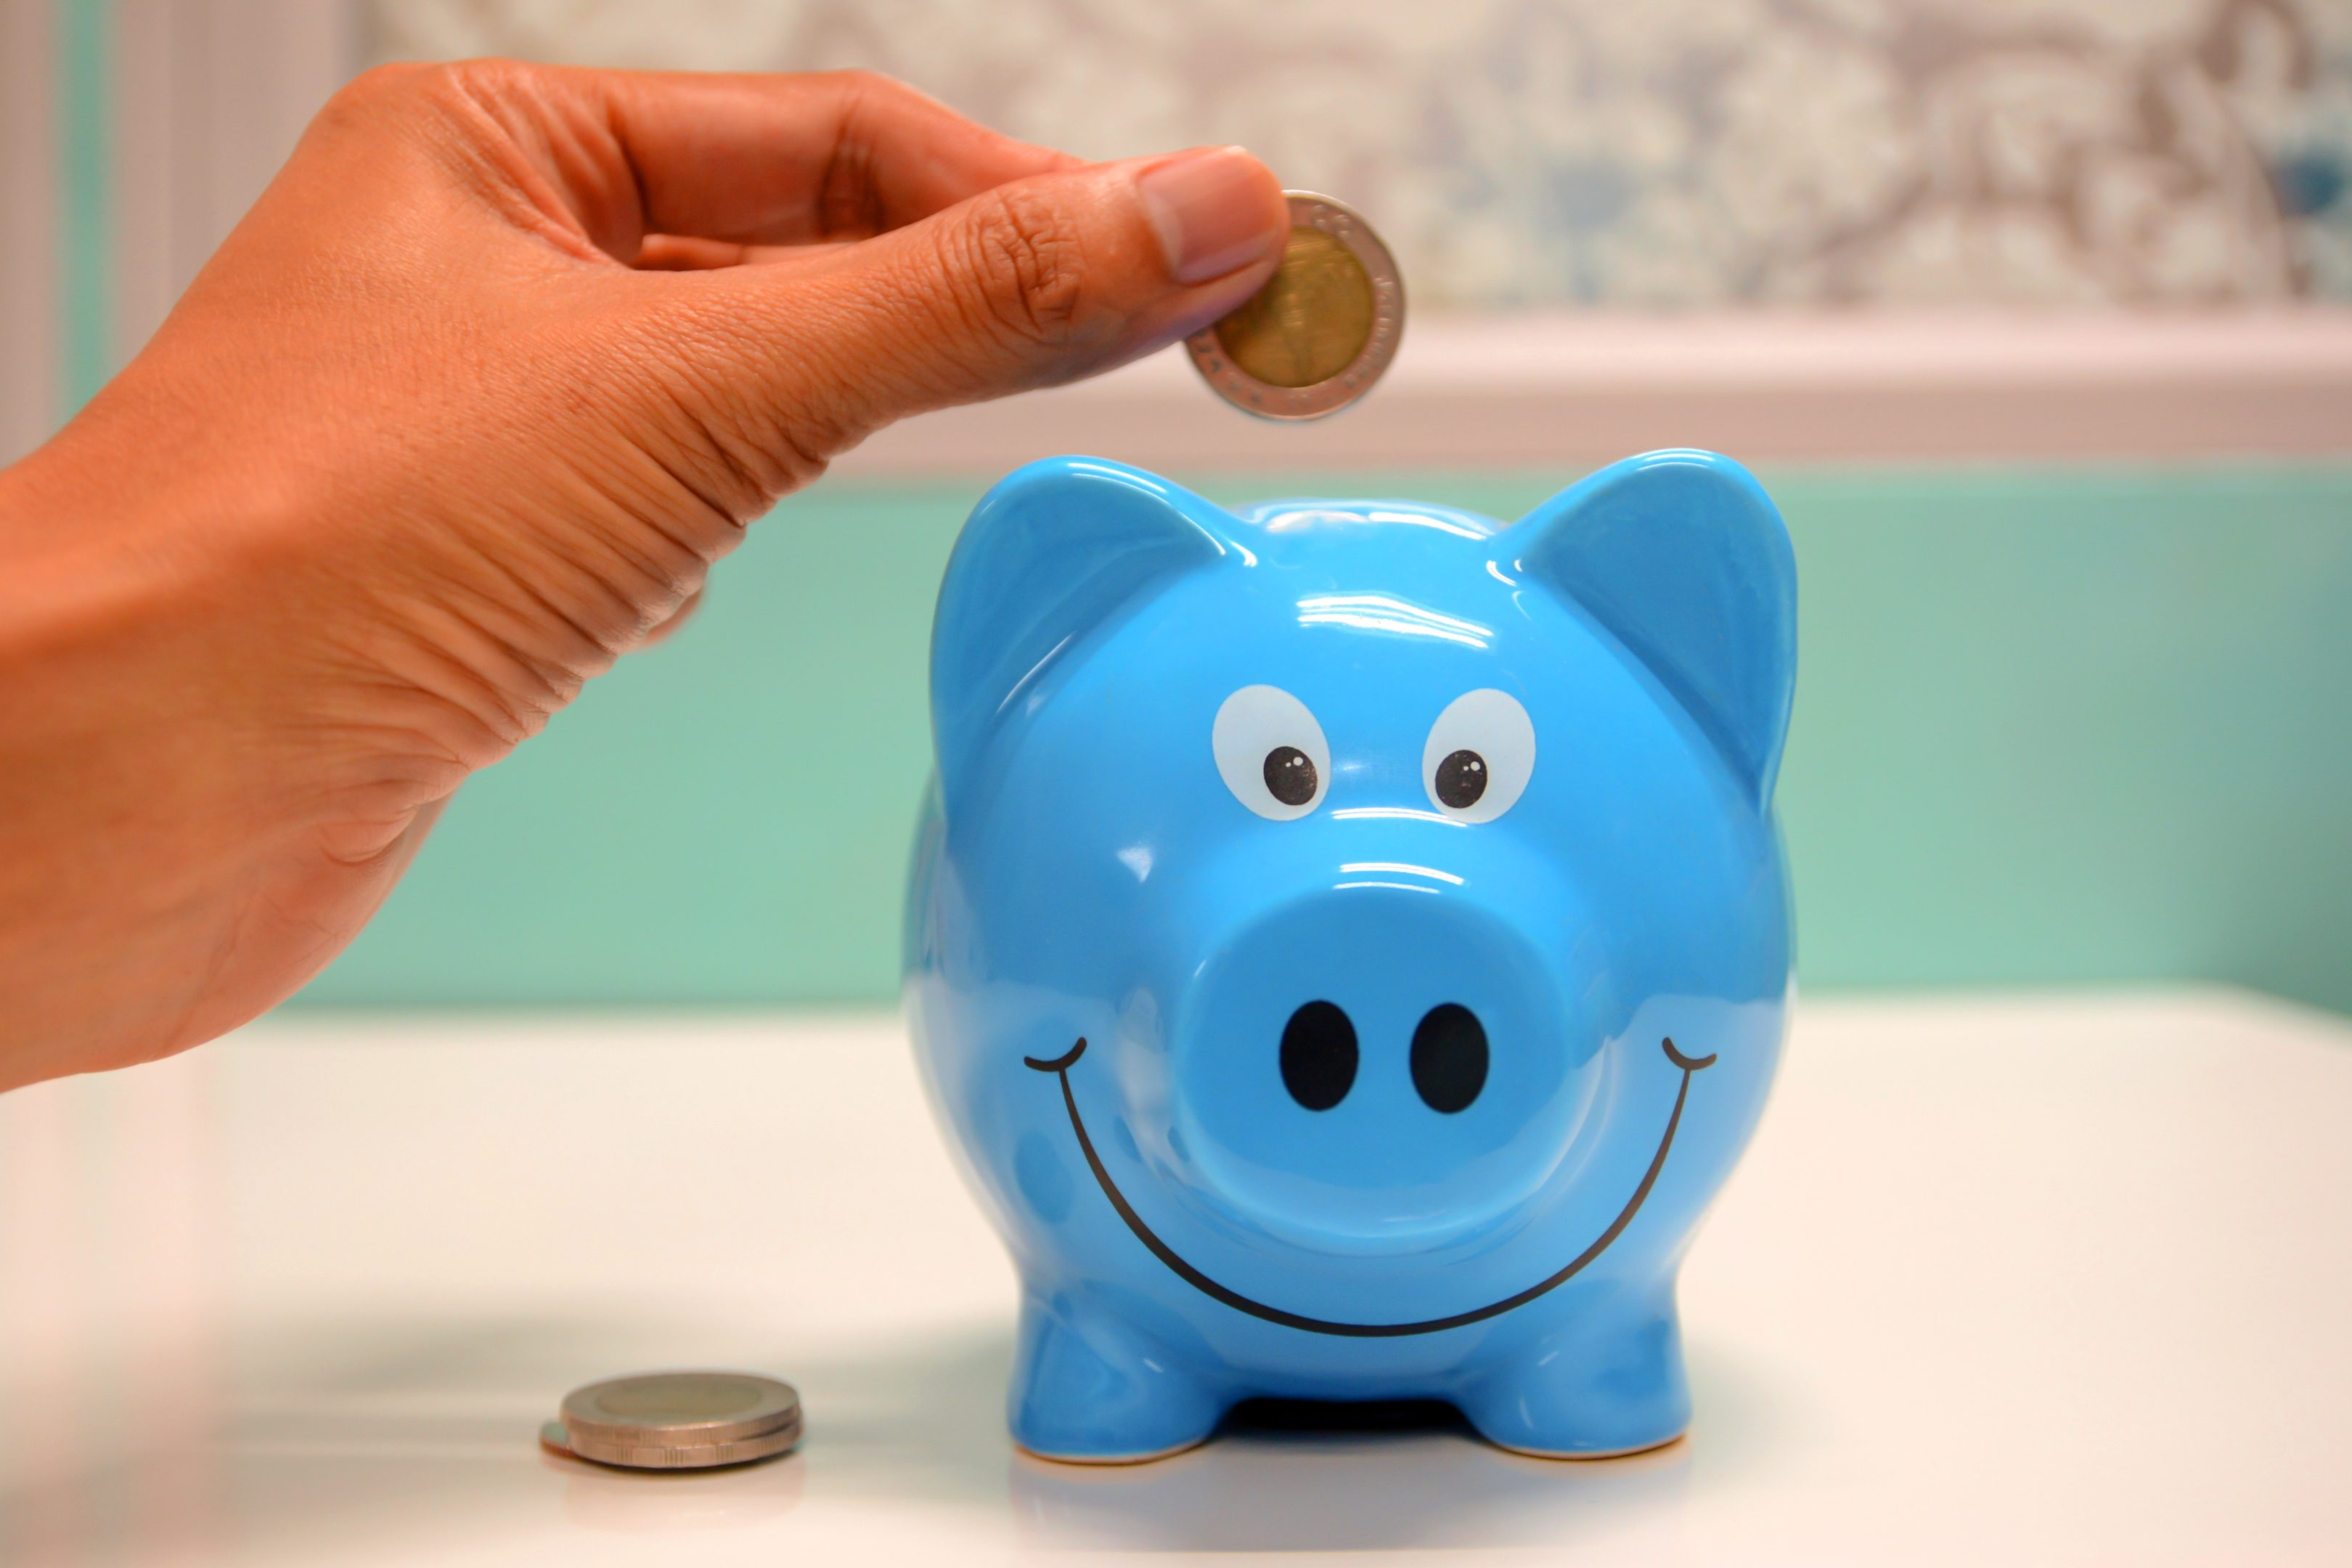 Fingers about to put a coin into a blue piggy bank